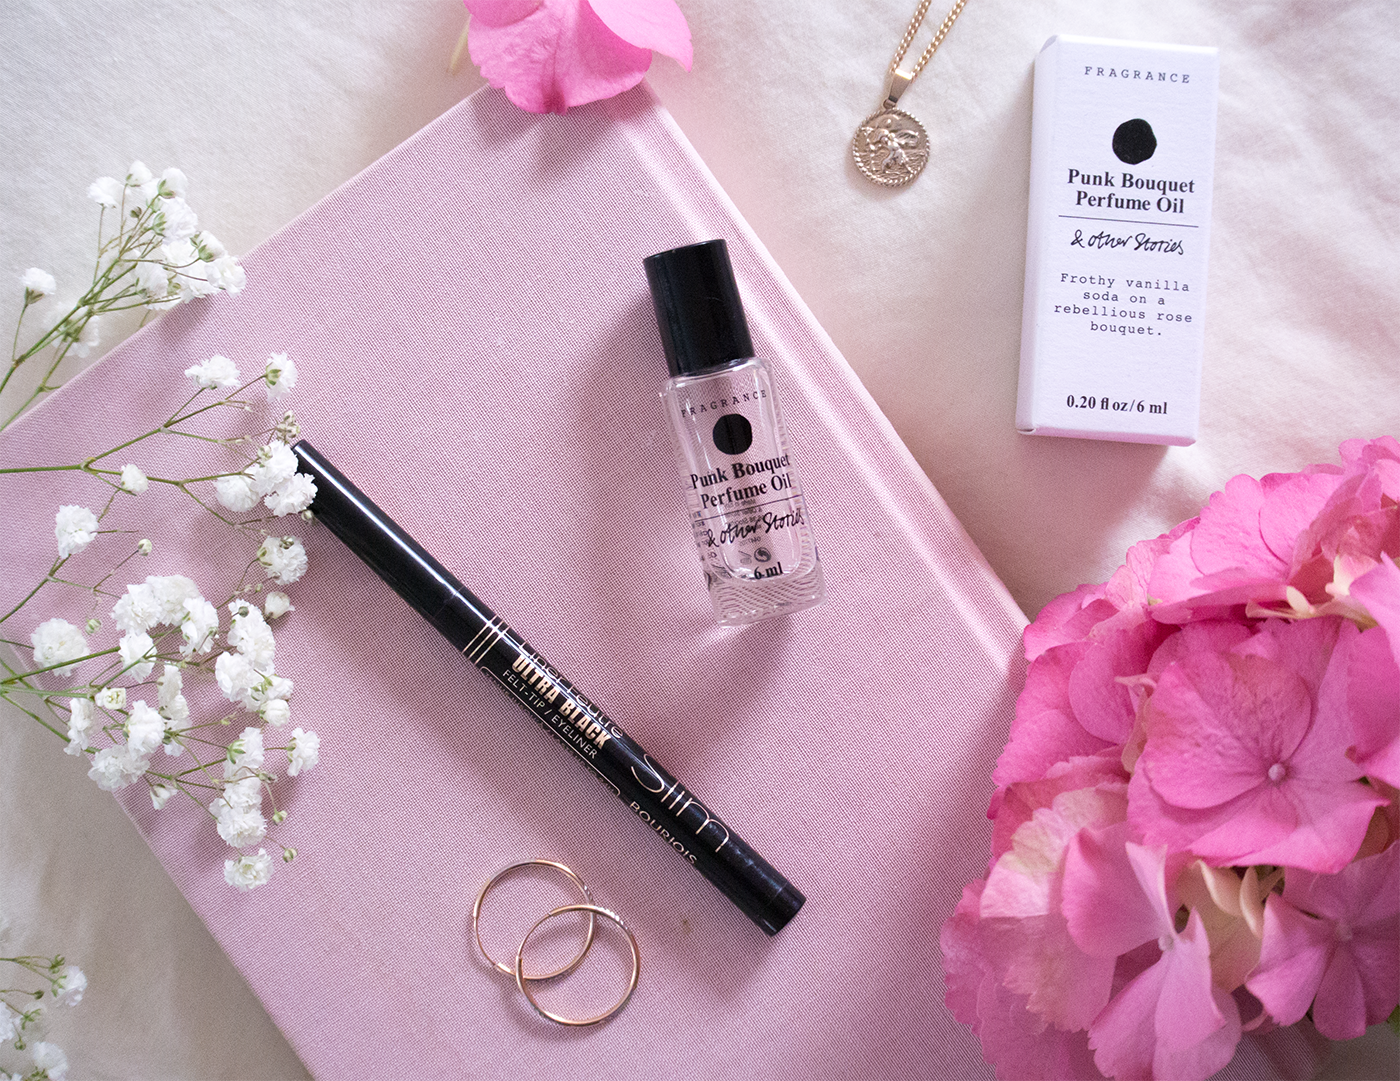 & other stories punk bouquet perfume oil bourjois liner feutre review